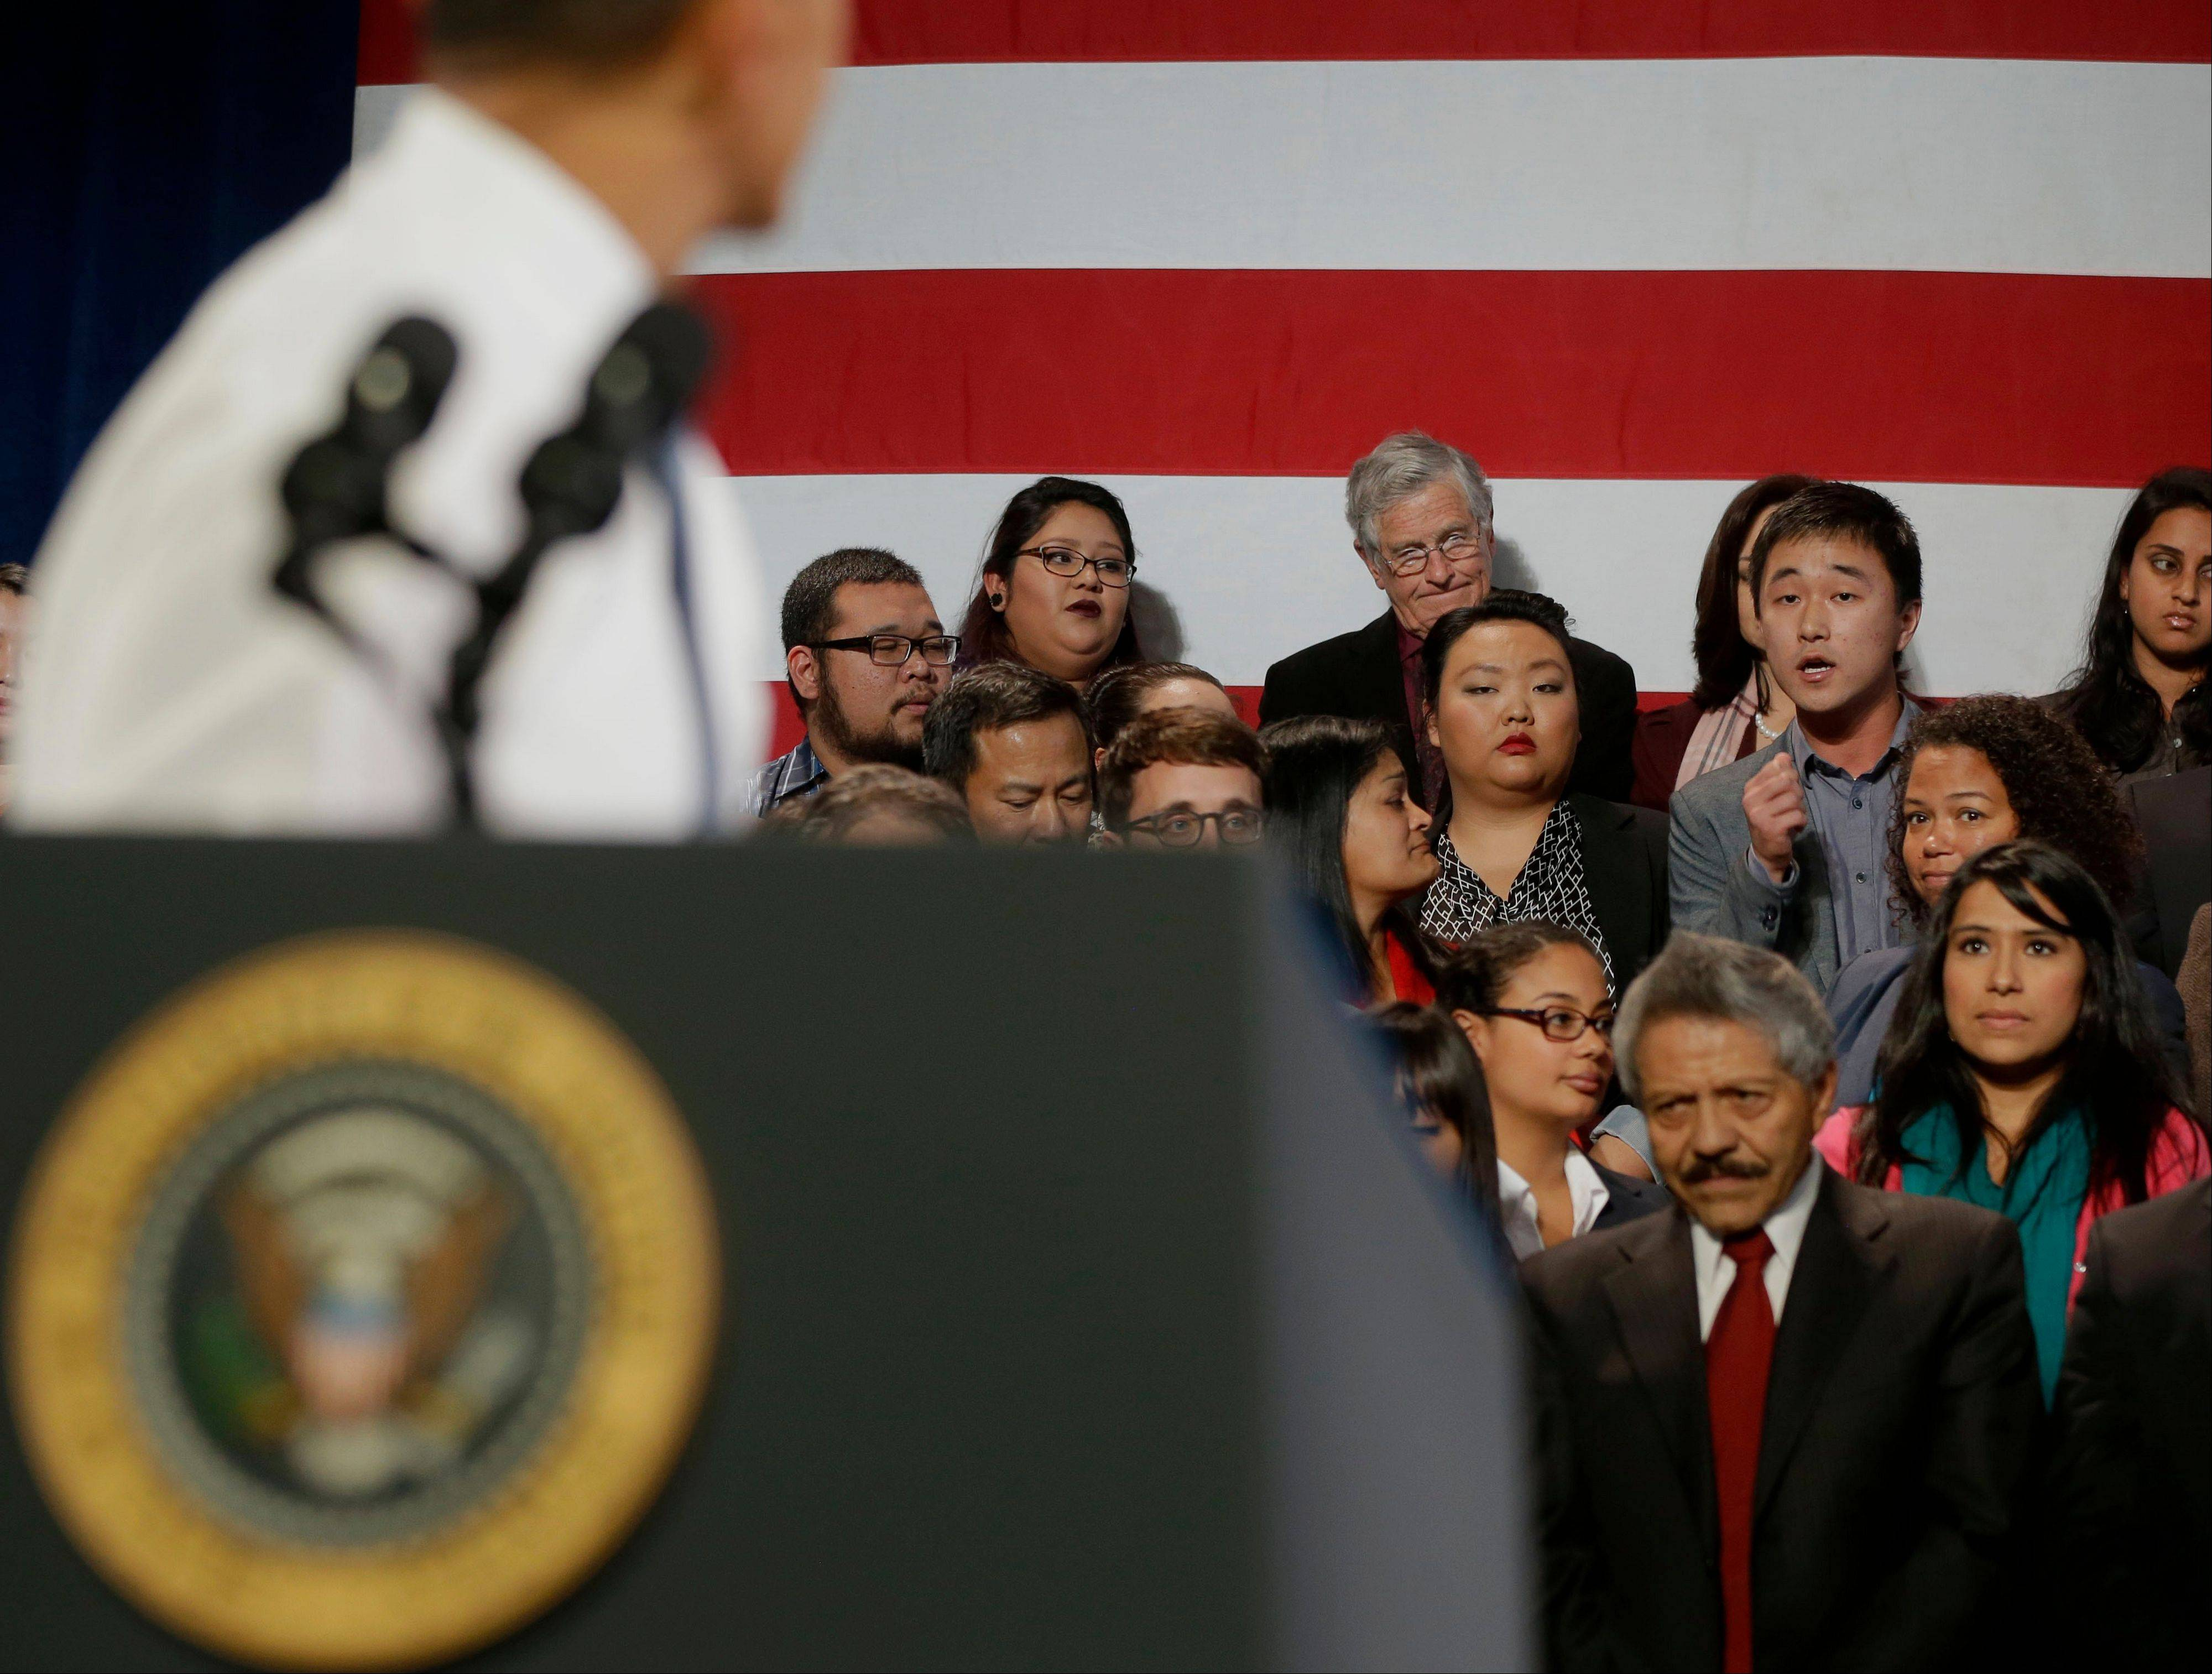 President Barack Obama, left, stops and turns to respond to Ju Hong who heckled him about anti-deportation policies at the Betty Ann Ong Chinese Recreation Center in San Francisco on Monday, Nov. 25, 2013. Obama stopped his speech about immigration reform to let Hong, who was located directly behind Obama, speak and to respond to his questions. South Koreans were delighted when Obama asked the young Korean heckler to stay, rather than ordering him removed. �I wish we had that kind of president who listens to the opinions of the minority,� says Kim Jin-hwan, a 32-year-old baker from Seoul. �I was very jealous.�